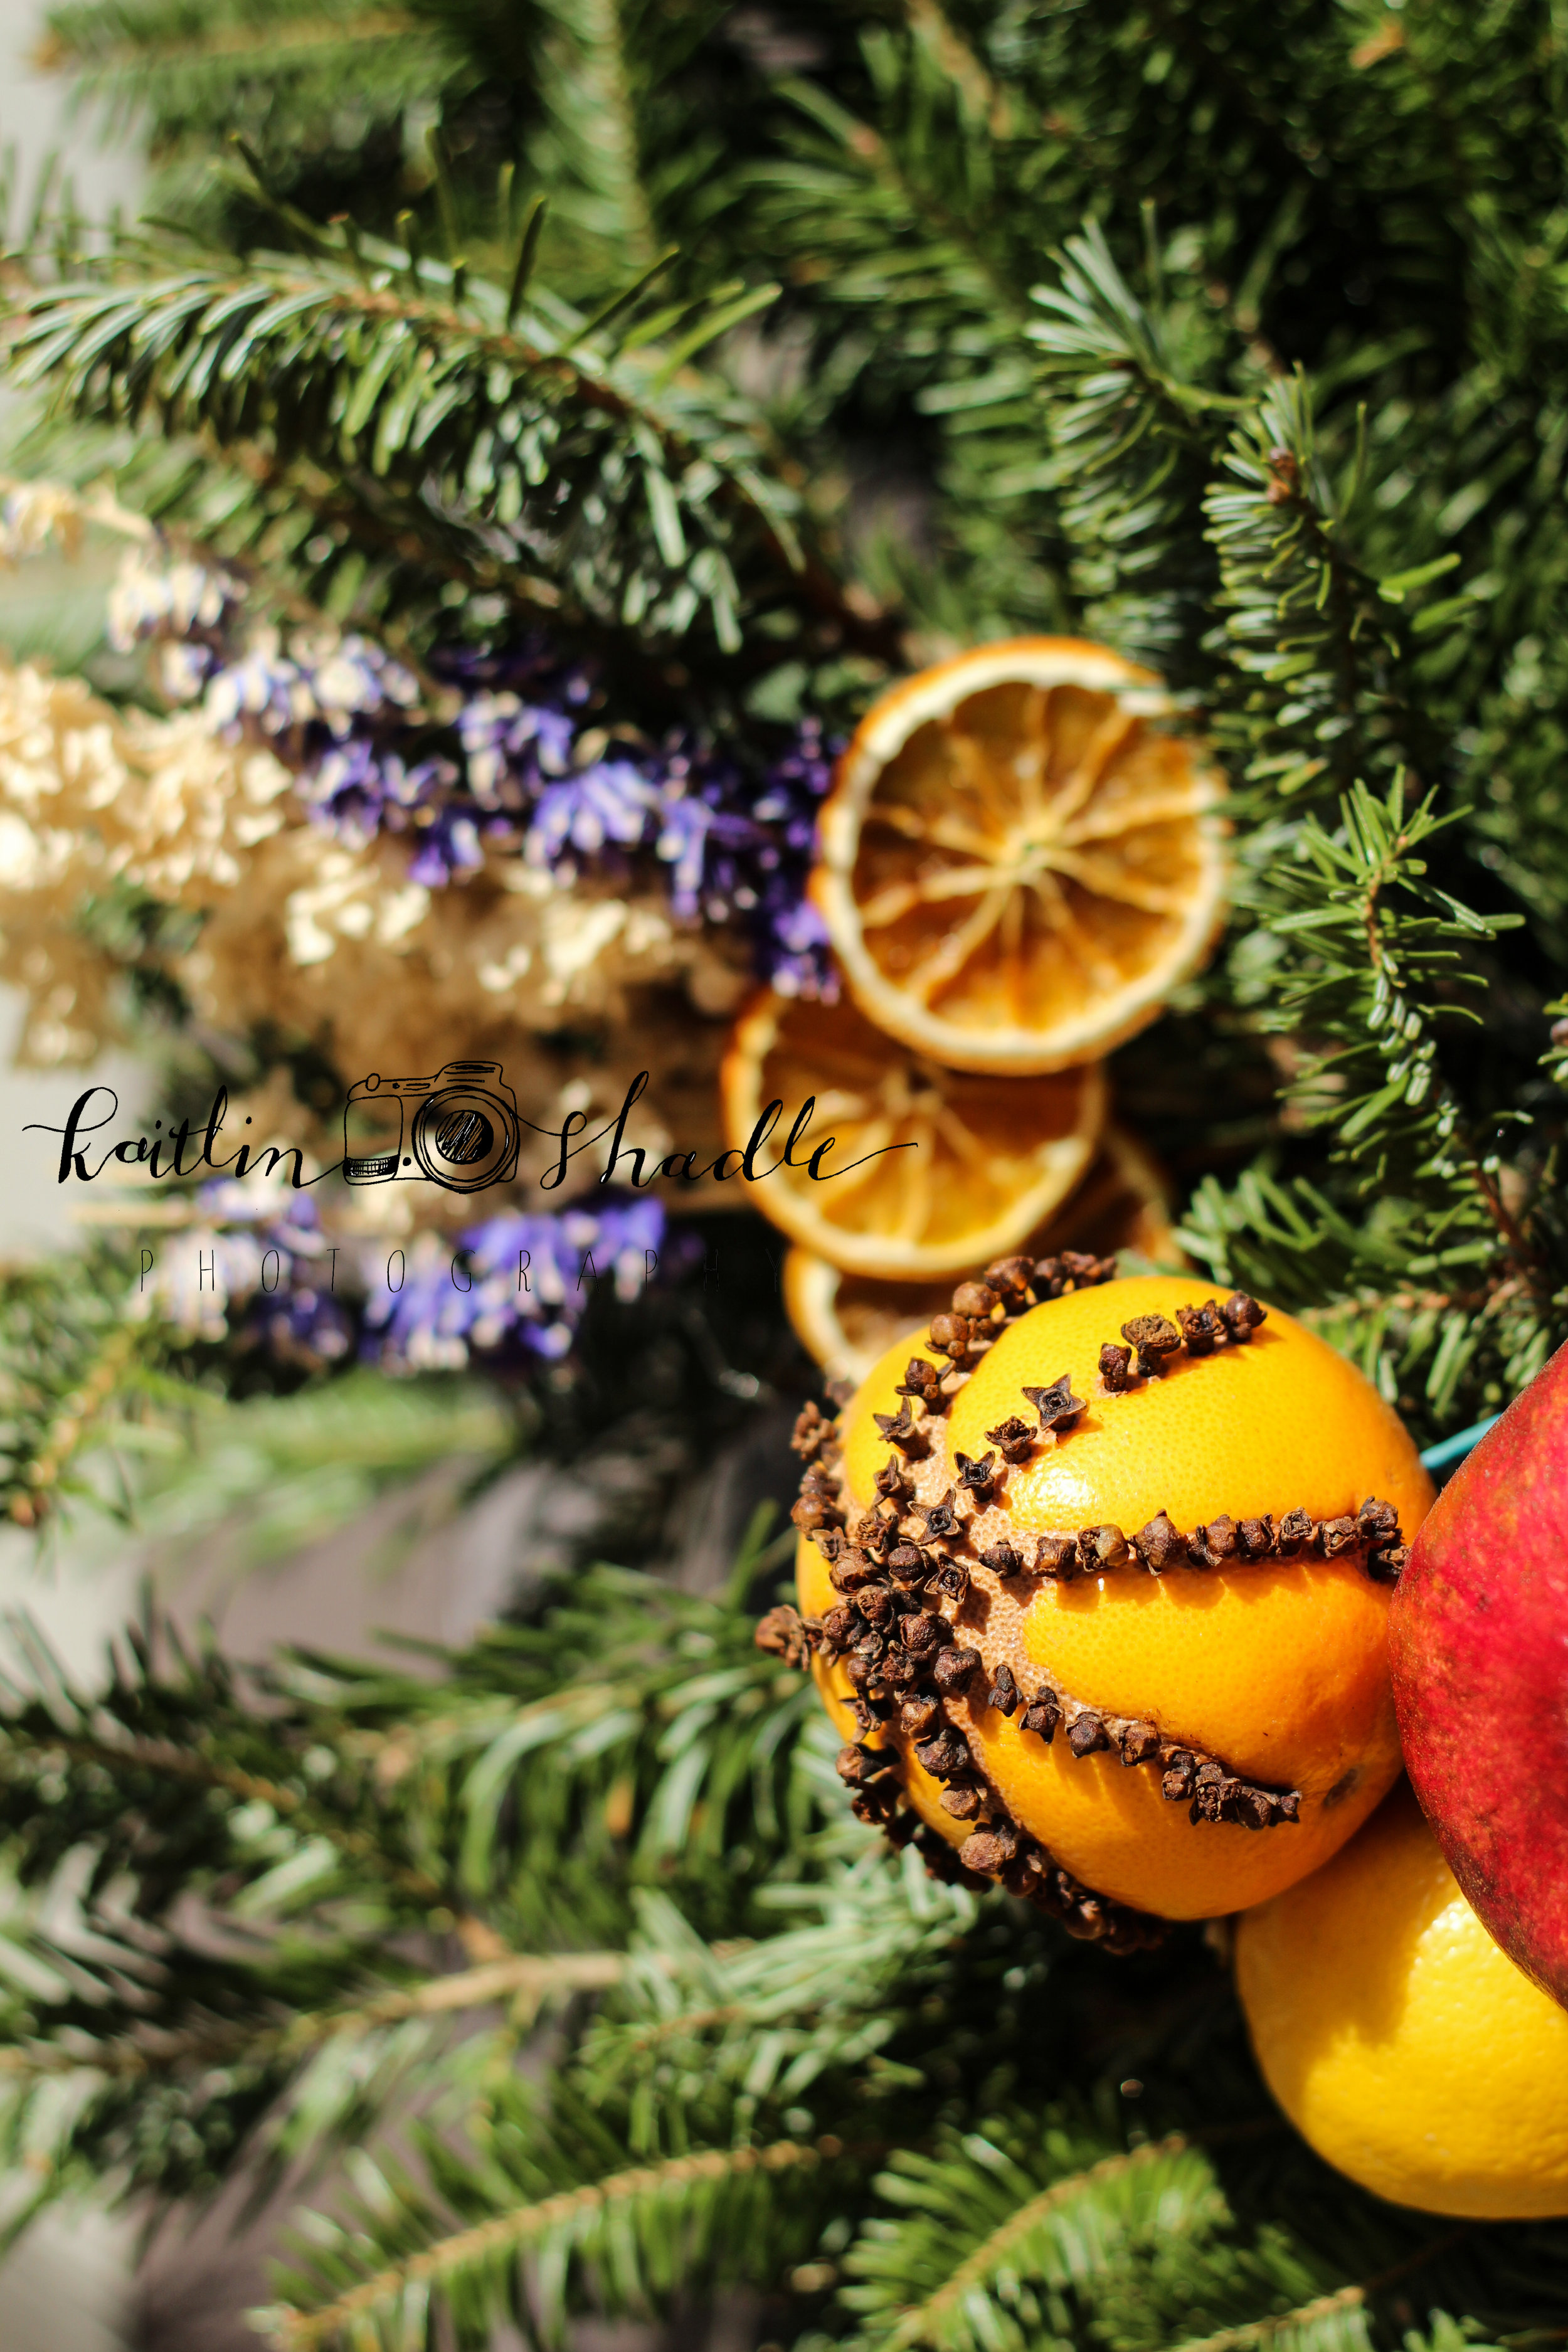 Cloves and Oranges